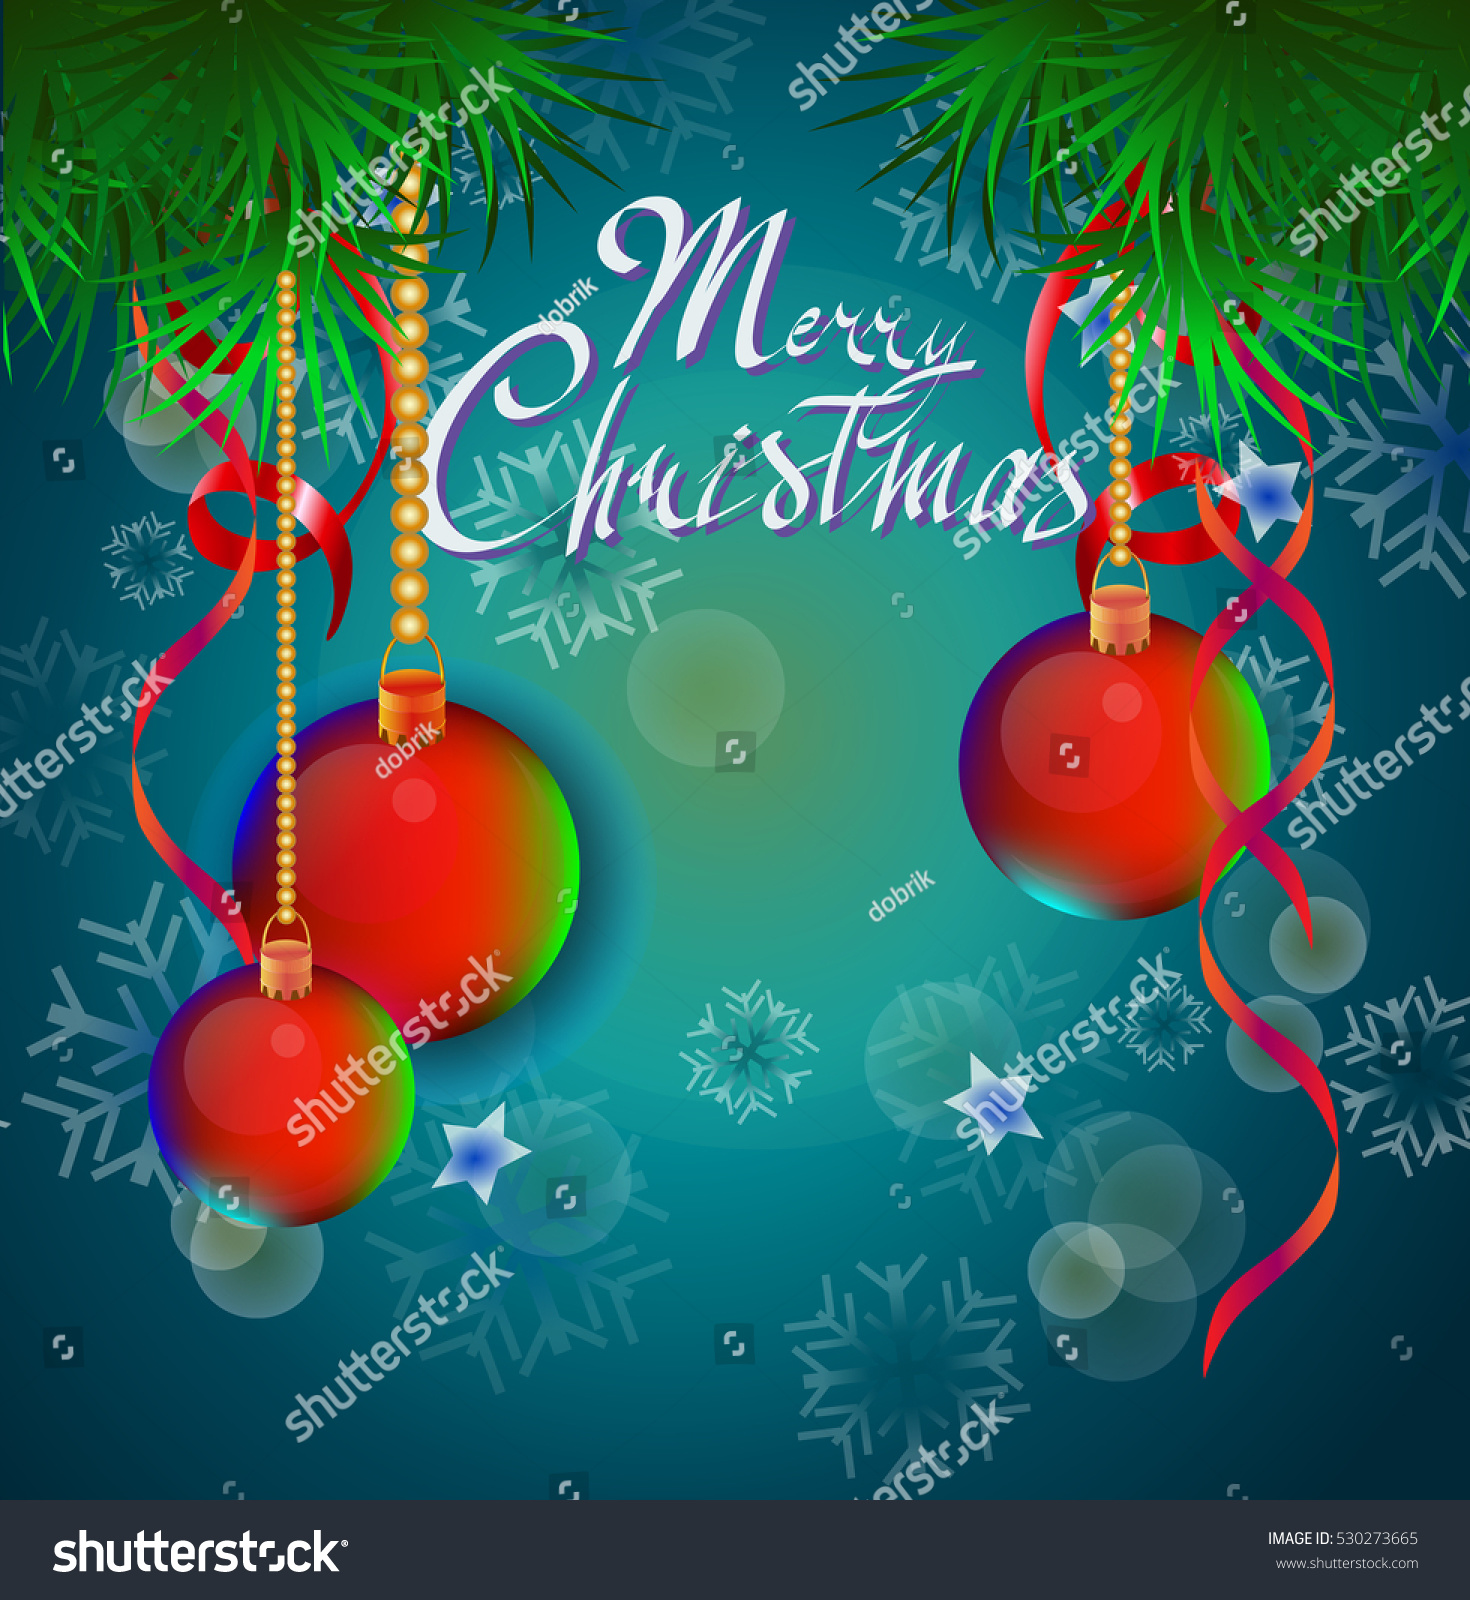 Christmas new year greeting card stock vector 530273665 shutterstock christmas and new year greeting card kristyandbryce Images